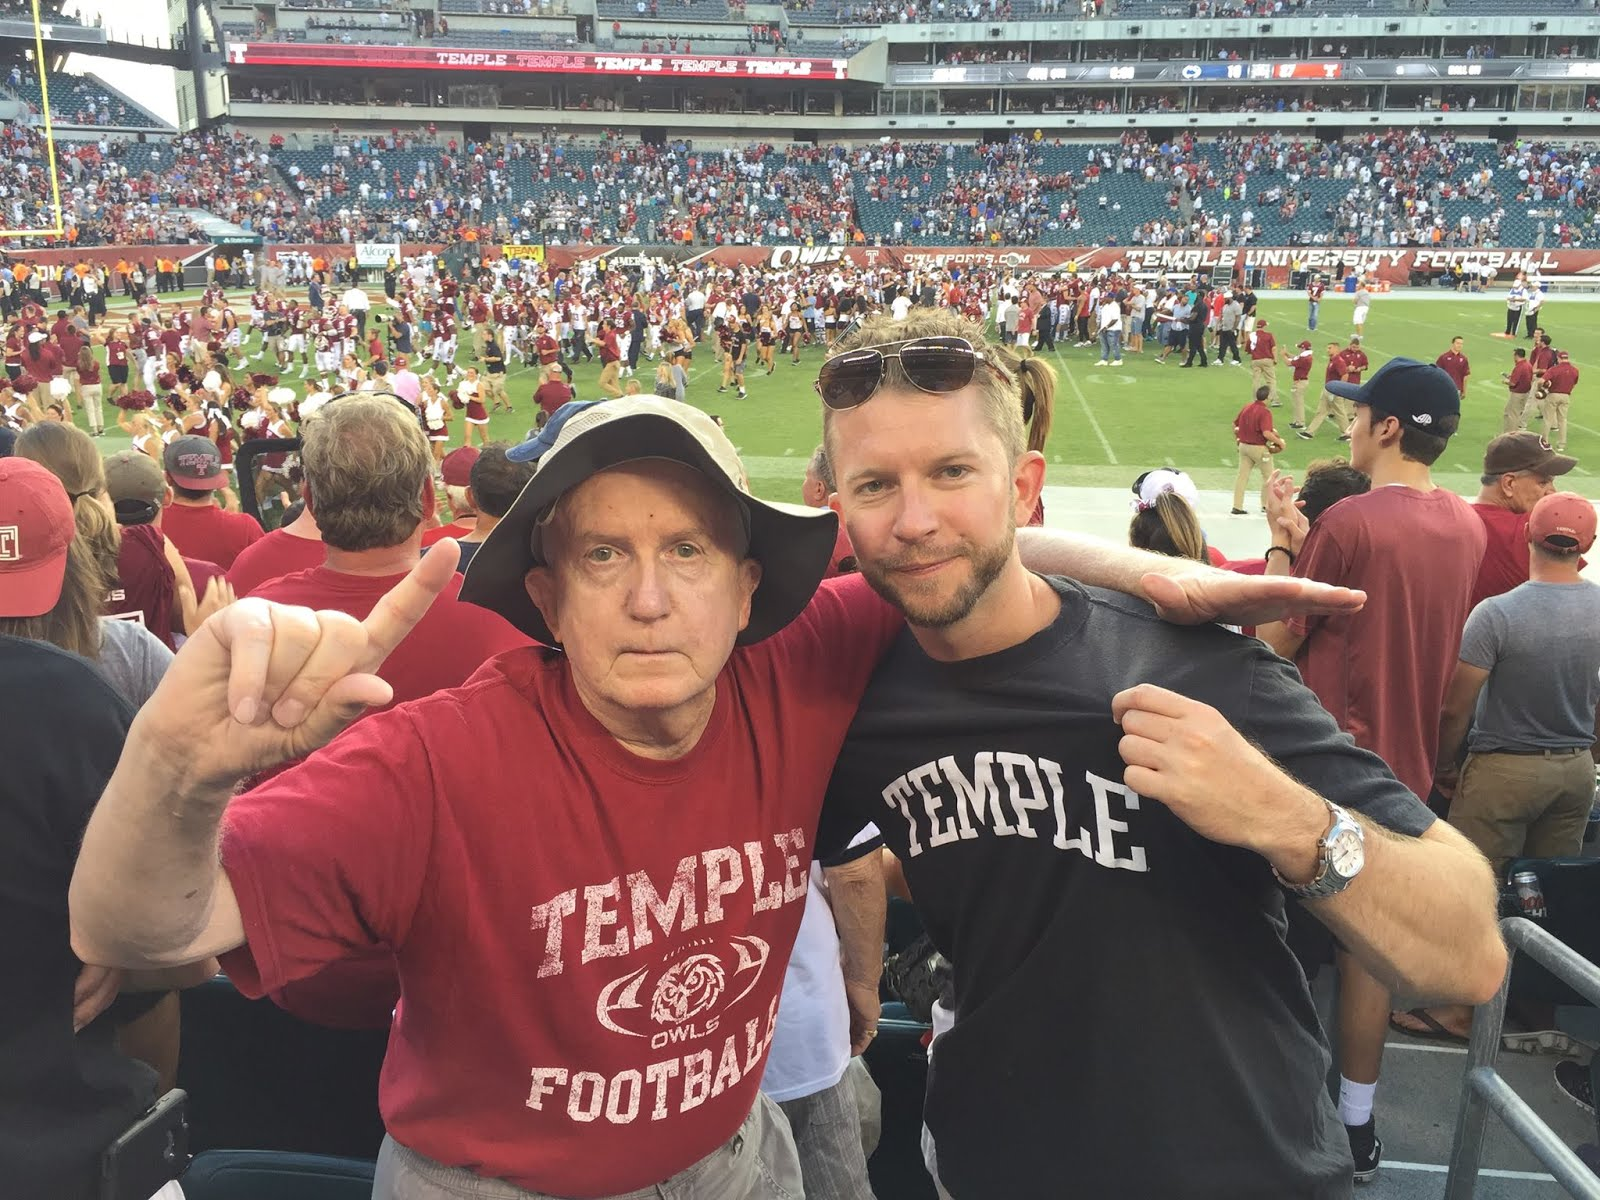 Ron and his son Matt following the Temple win over Penn State!